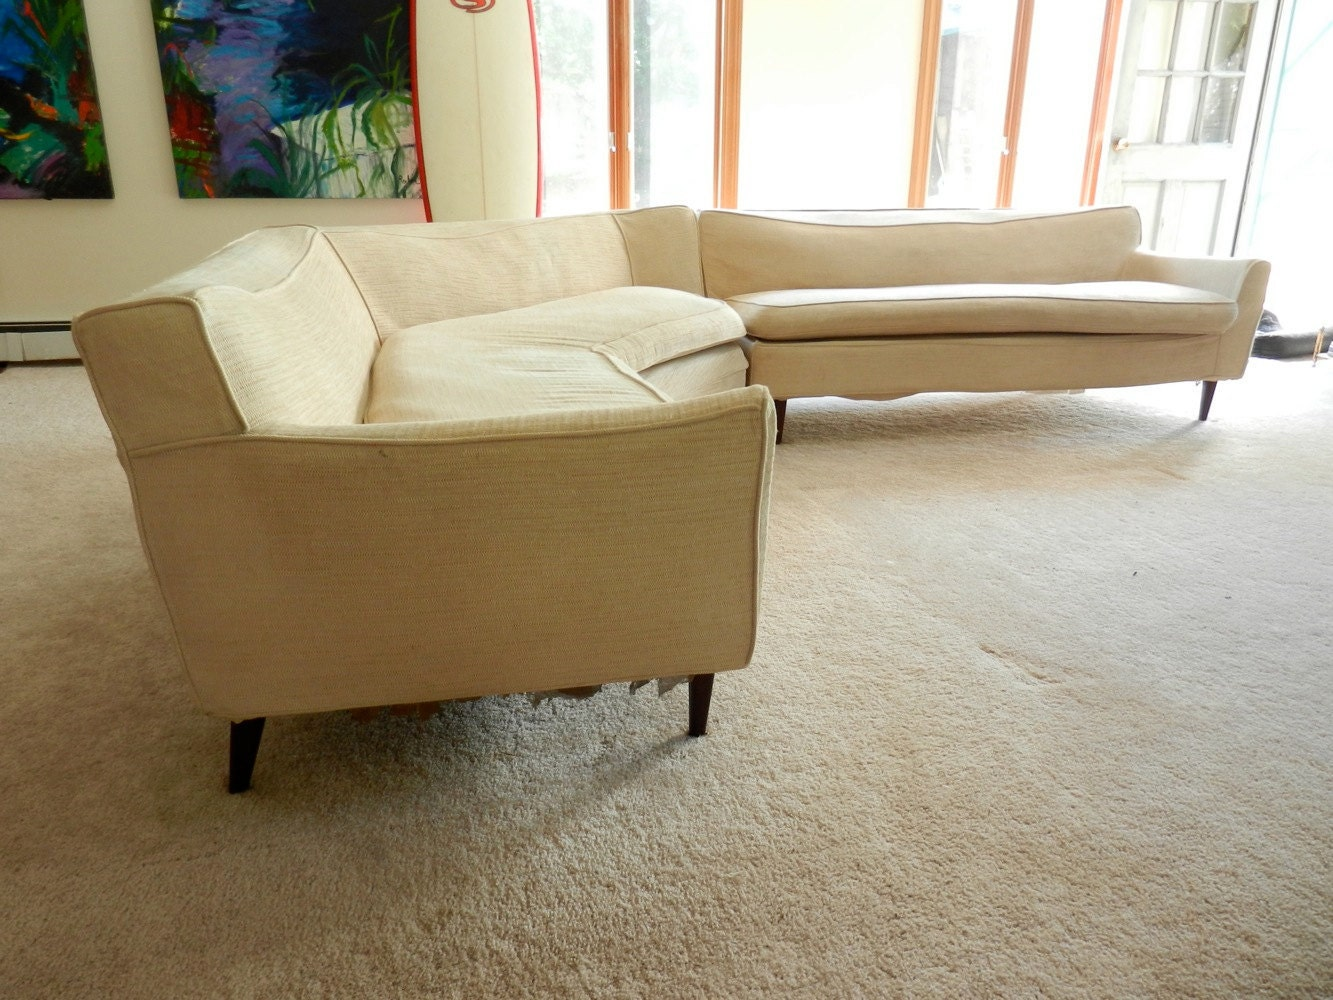 60s Sectional Sofa Reserved Mid Century 1950s Or 60s Sectional Sofa By